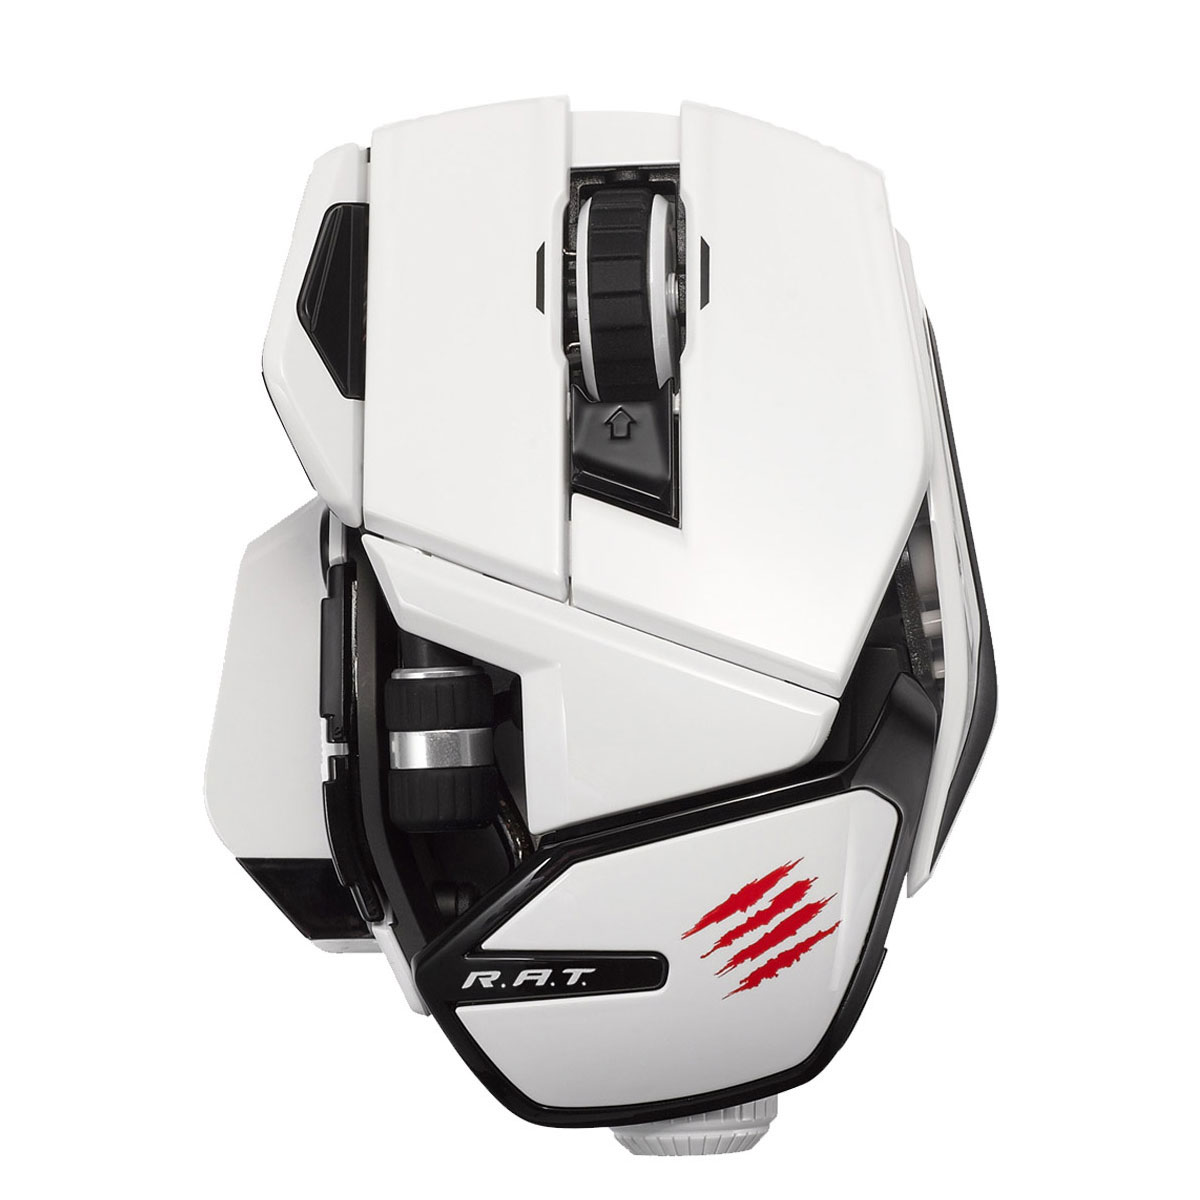 mad catz office r a t rat white souris pc mad catz sur ldlc. Black Bedroom Furniture Sets. Home Design Ideas